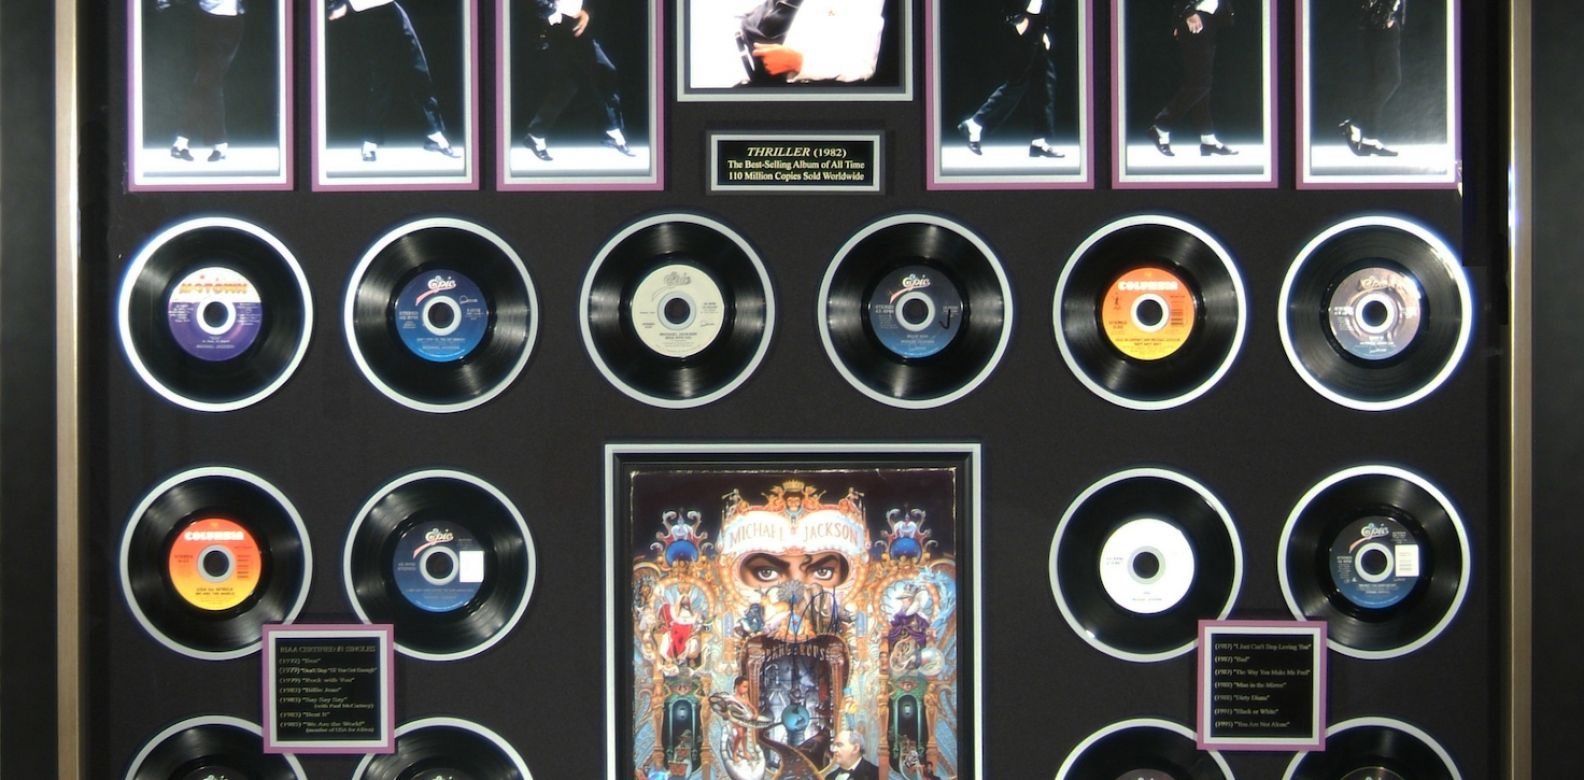 Michael Jackson - #1 Record Singles Collection Rare Autographed Display (Photo: Courtesy of Areteos Historical Concept)